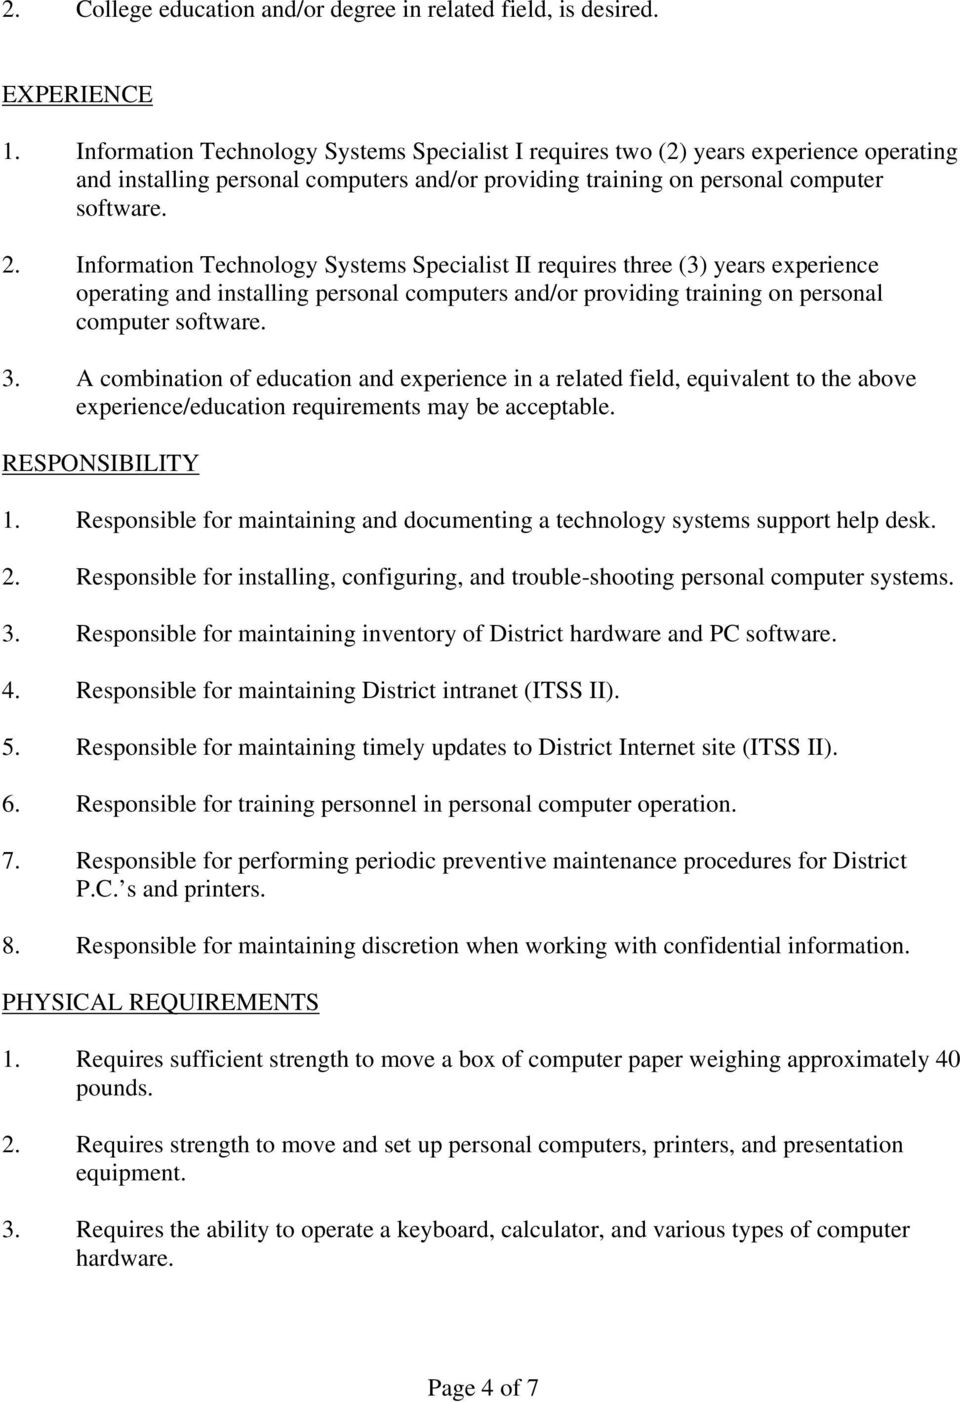 Information Technology Systems Specialist II requires three (3) years experience operating and installing personal computers and/or providing training on personal computer software. 3.